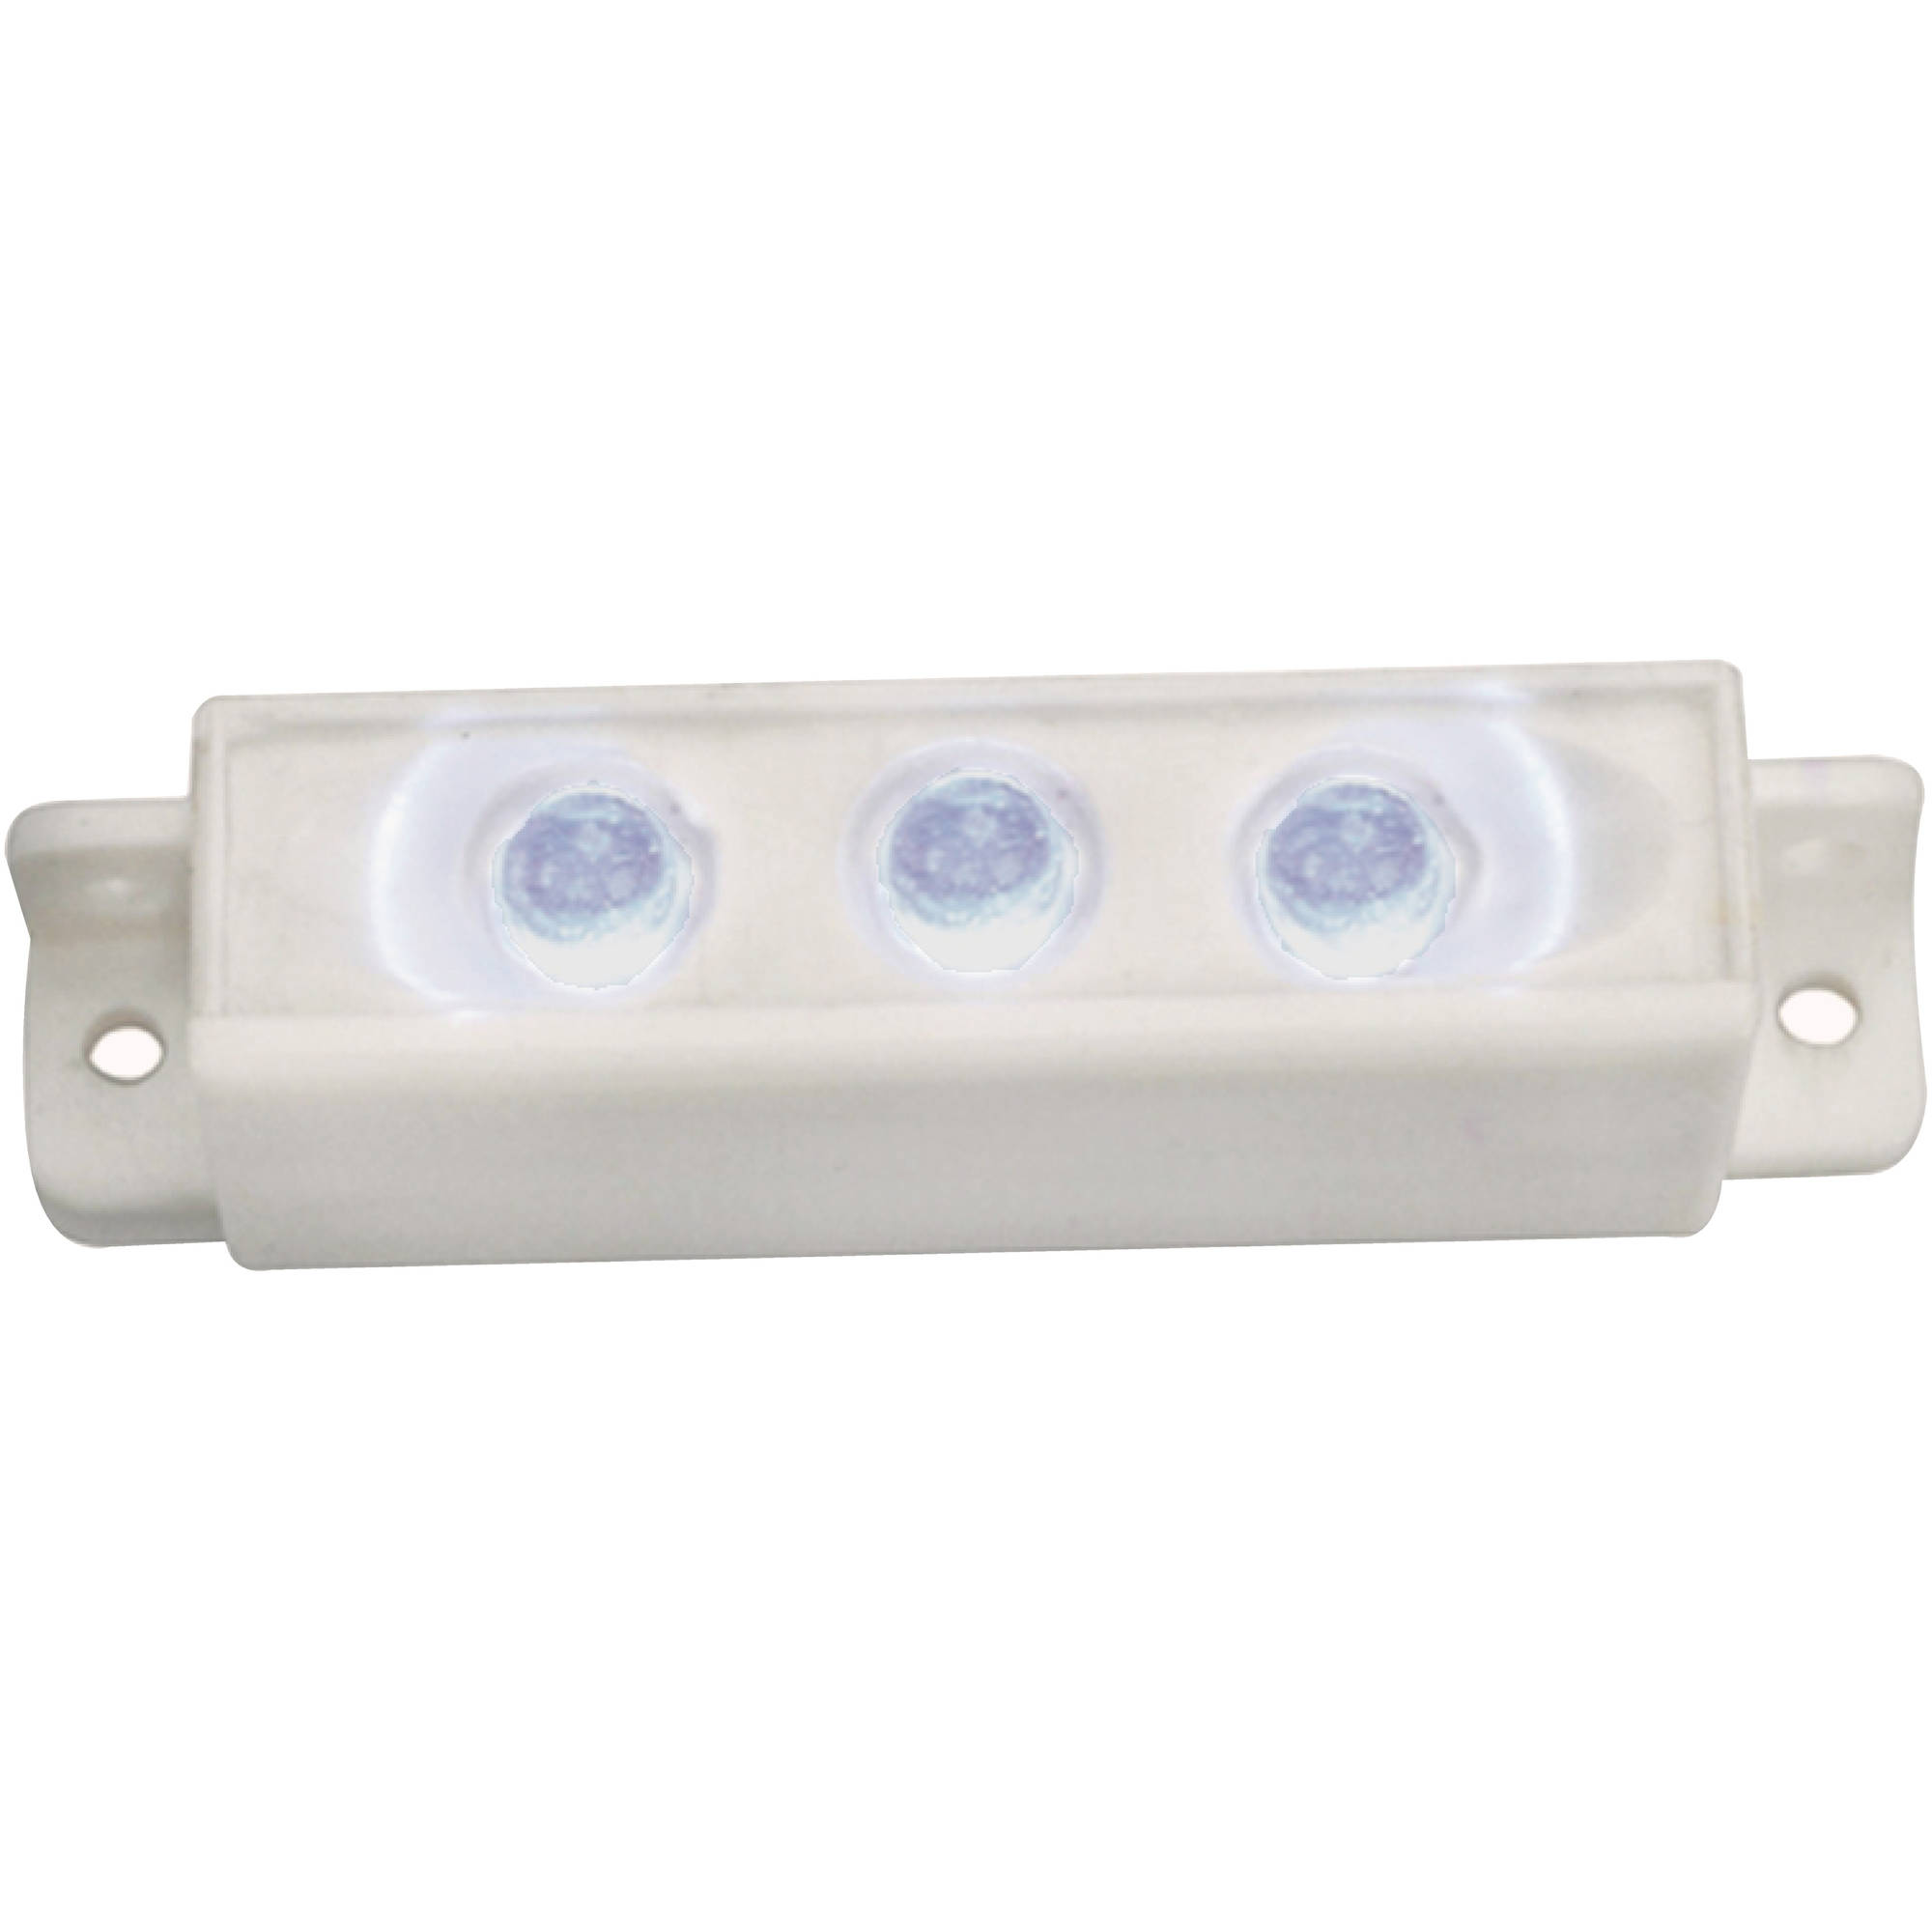 T-H Marine LED Mini Dual Mount Courtesy Light, White by T-H Marine Supplies